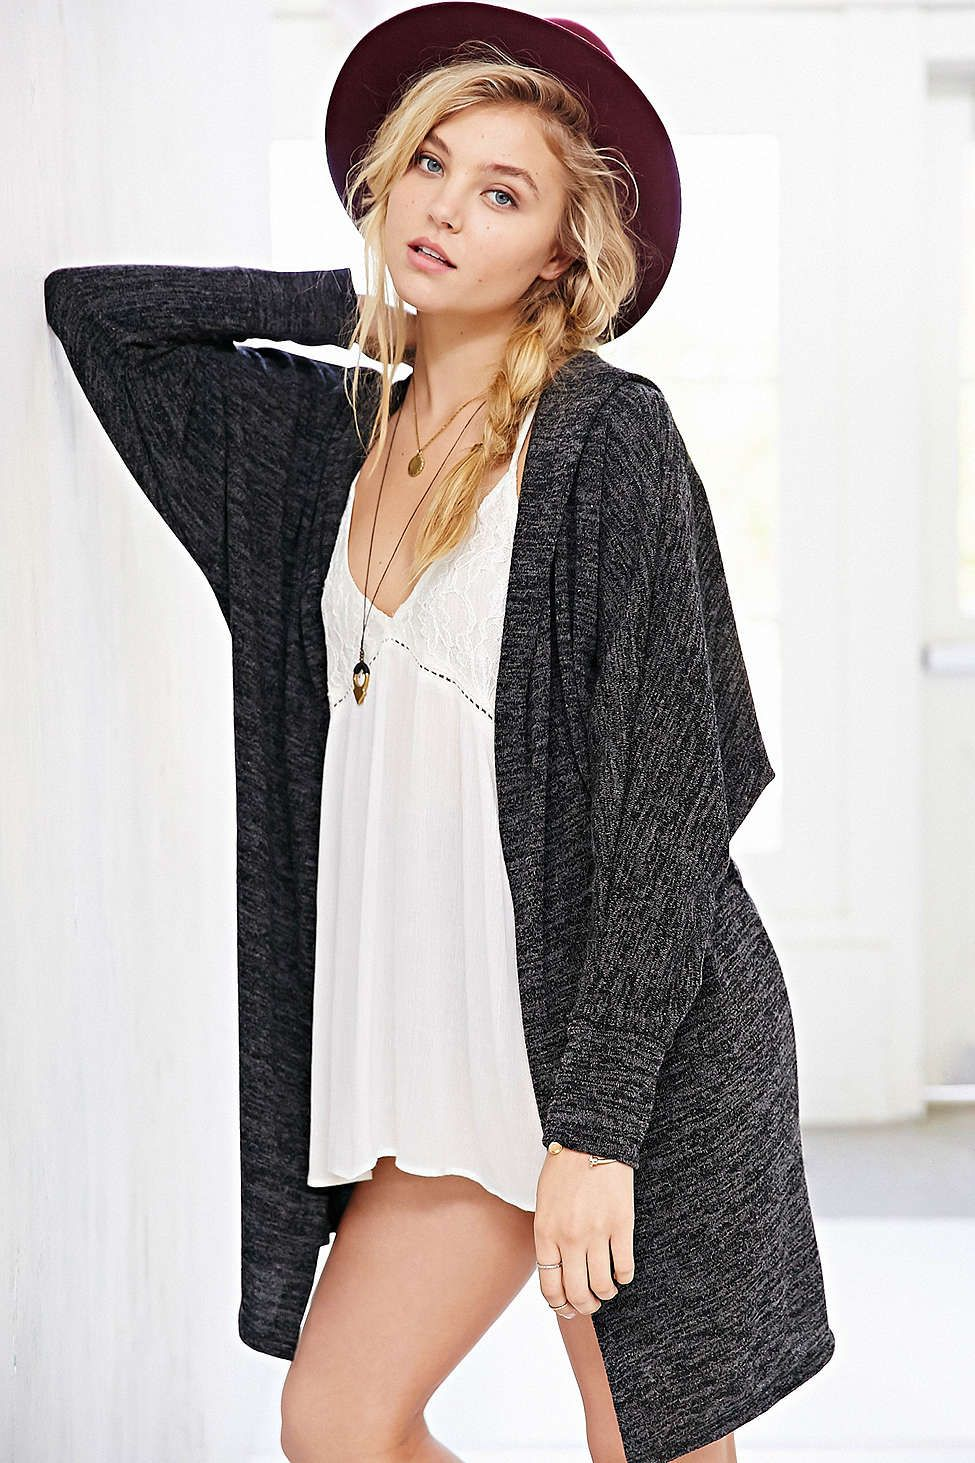 BDG Slouchy Hooded Cardigan - sweater weather! Just look at the ...